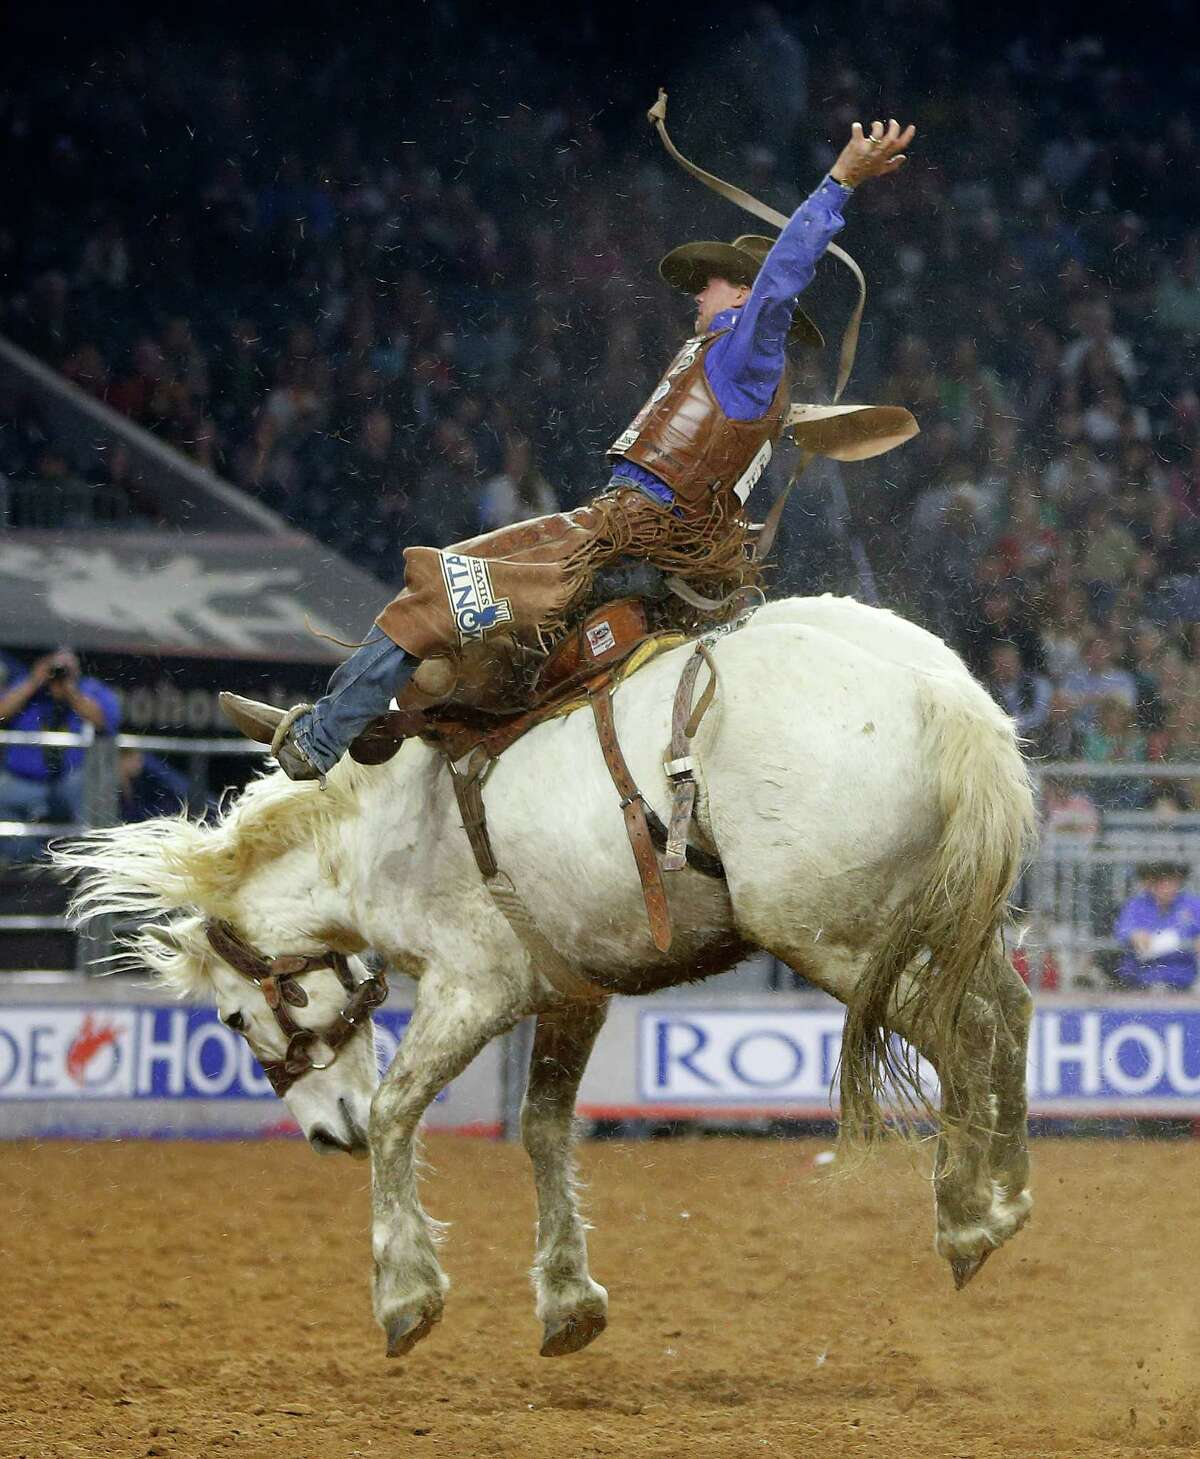 Cody DeMoss rode Snow White in the saddle bronc riding competition Tuesday.